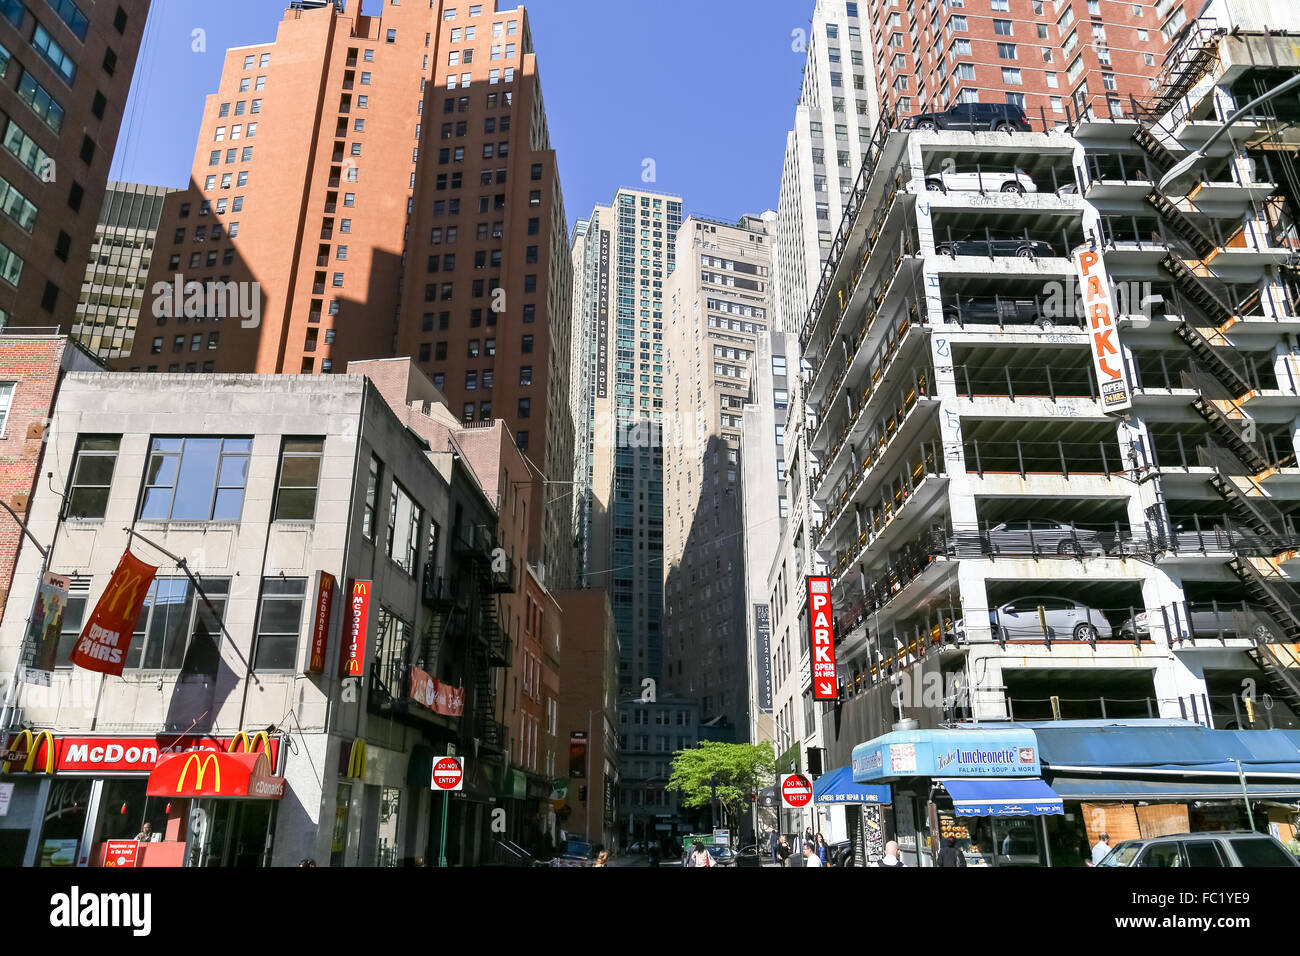 Neighbourhood in NY - Stock Image